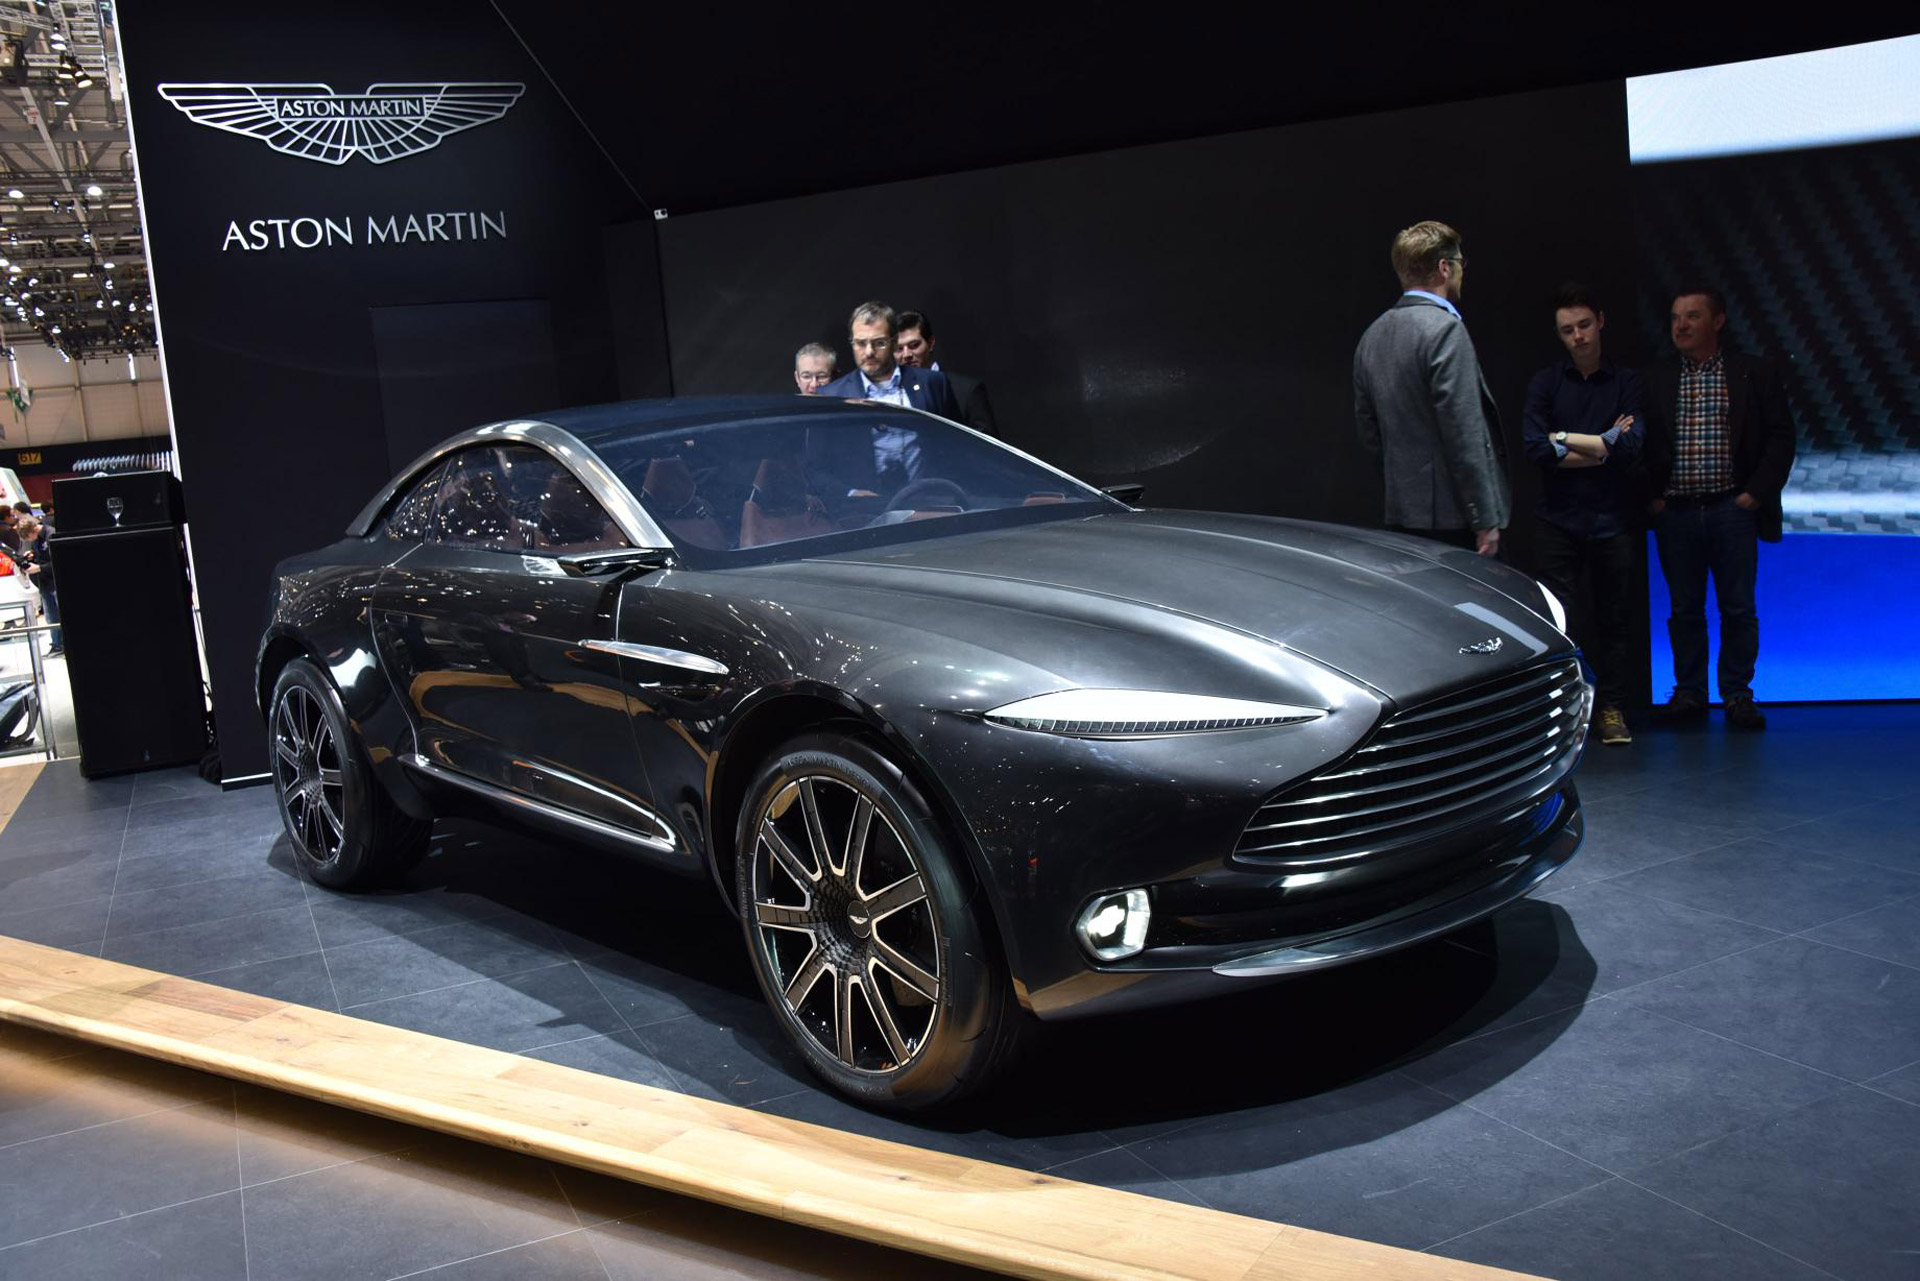 Aston Martin Dbx Concept Is An All Electric Off Roading